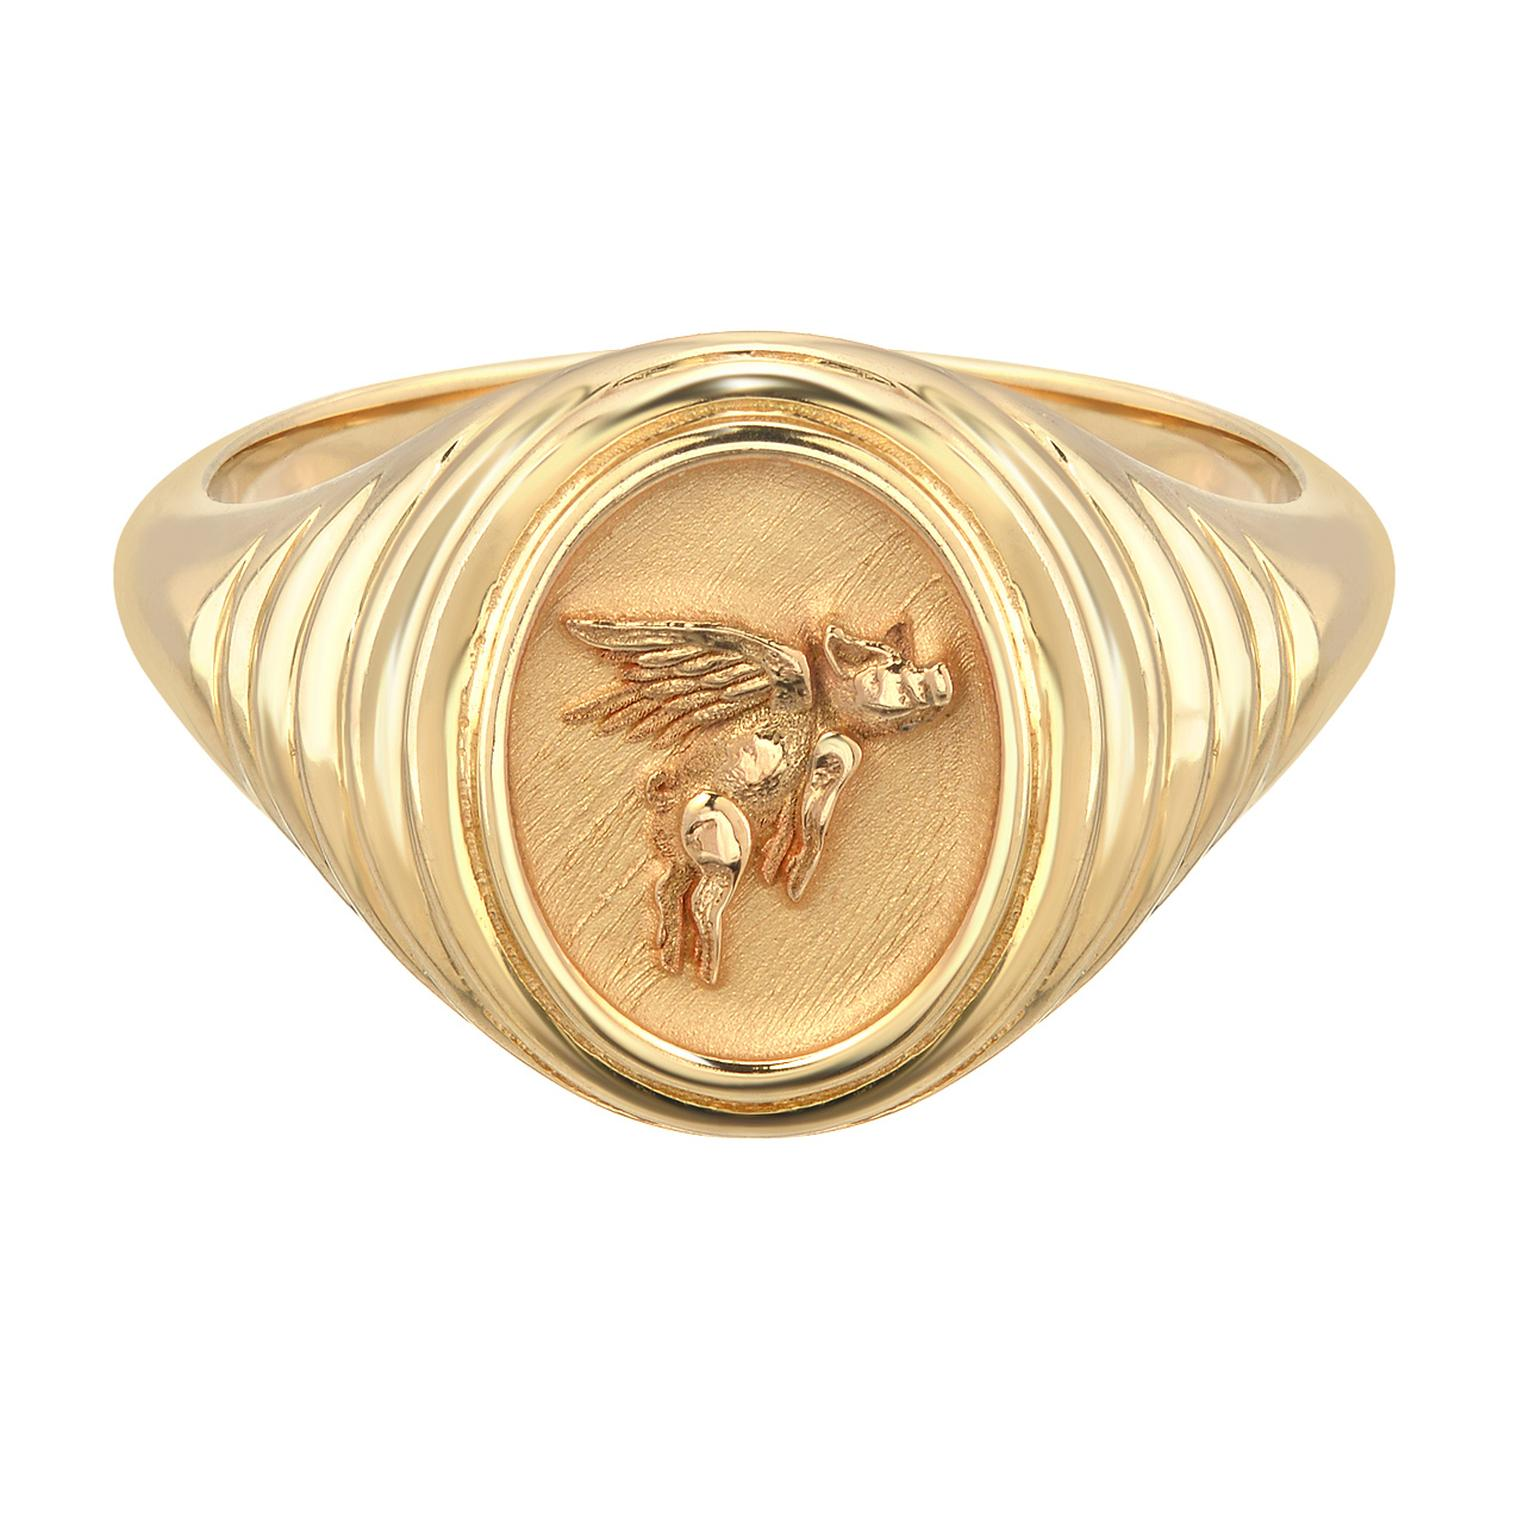 Retrouvai Fantasy Flying Pig signet ring